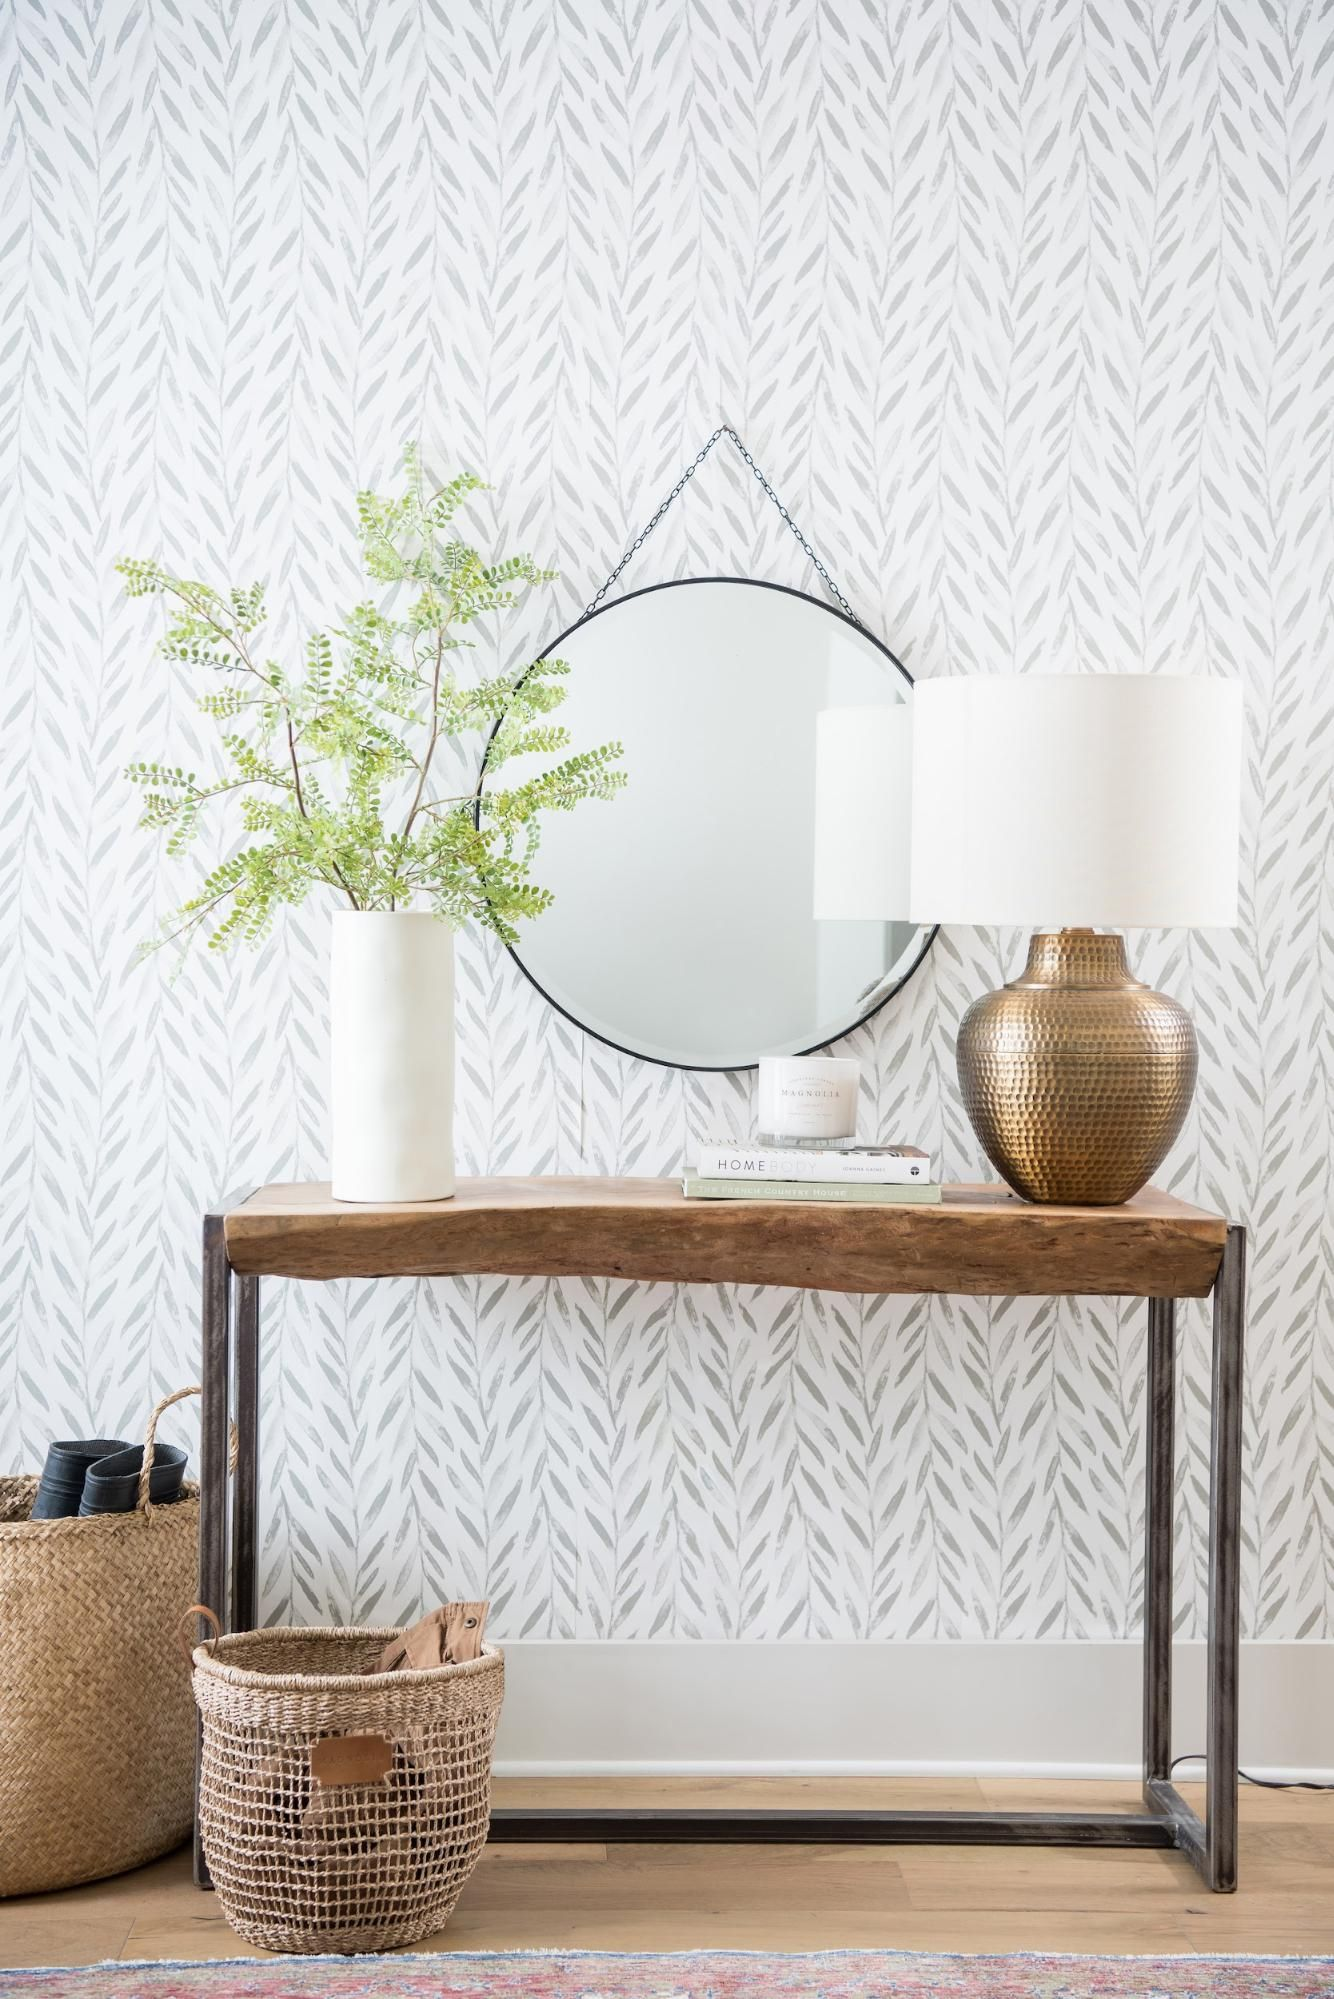 Incorporating Wallpaper Into Your Home Magnolia Magnolia Home Decor Home Wallpaper Home Decor